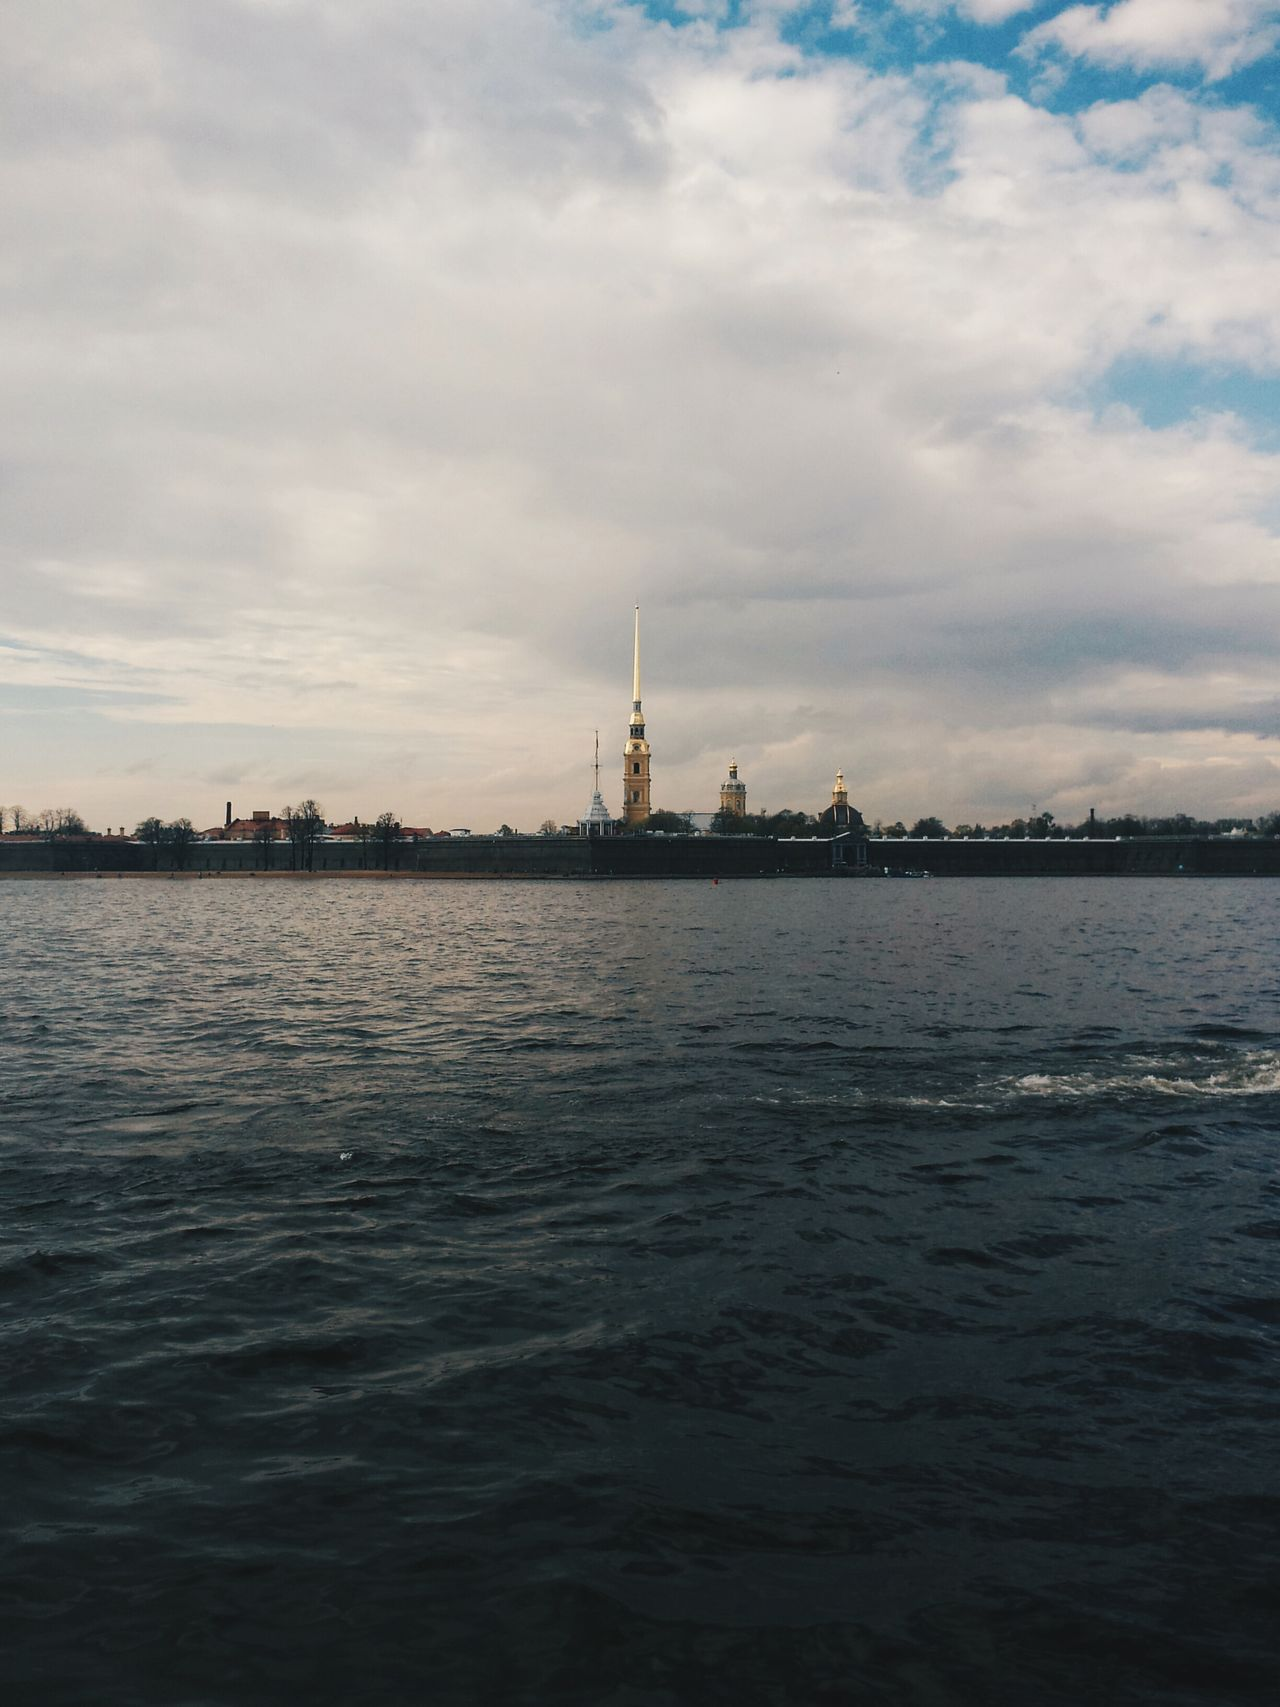 Building Exterior City Saint Petersburg Saint-Petersburg Cityscape Architecture Neva River Neva River Outdoors Water Sky And Clouds No People Petropavlovskayafortress Petropavlovsaya Fortress Petropavlovsky Krepost Petropavlovskaya Forteca The Architect - 2017 EyeEm Awards